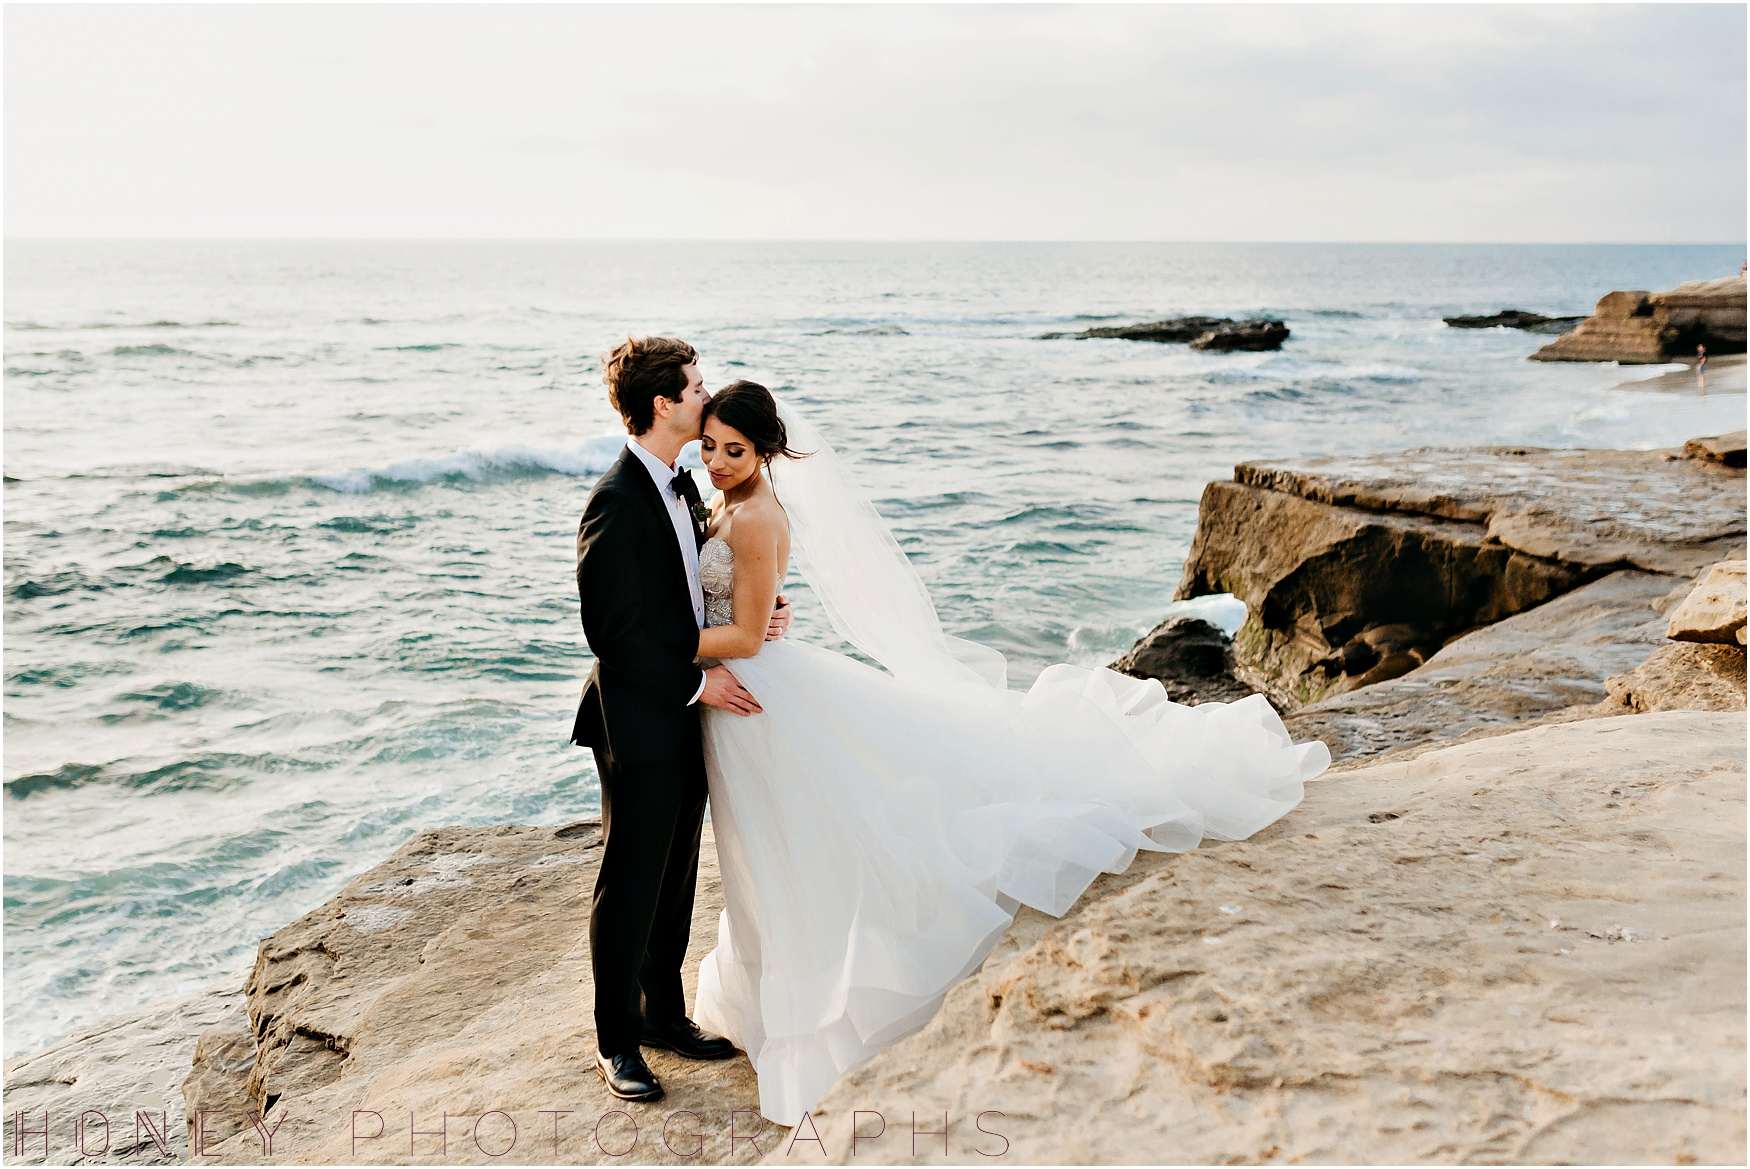 la_jolla_timeless_classic_elegant_cliffs_beach_black_tie_wedding037.jpg